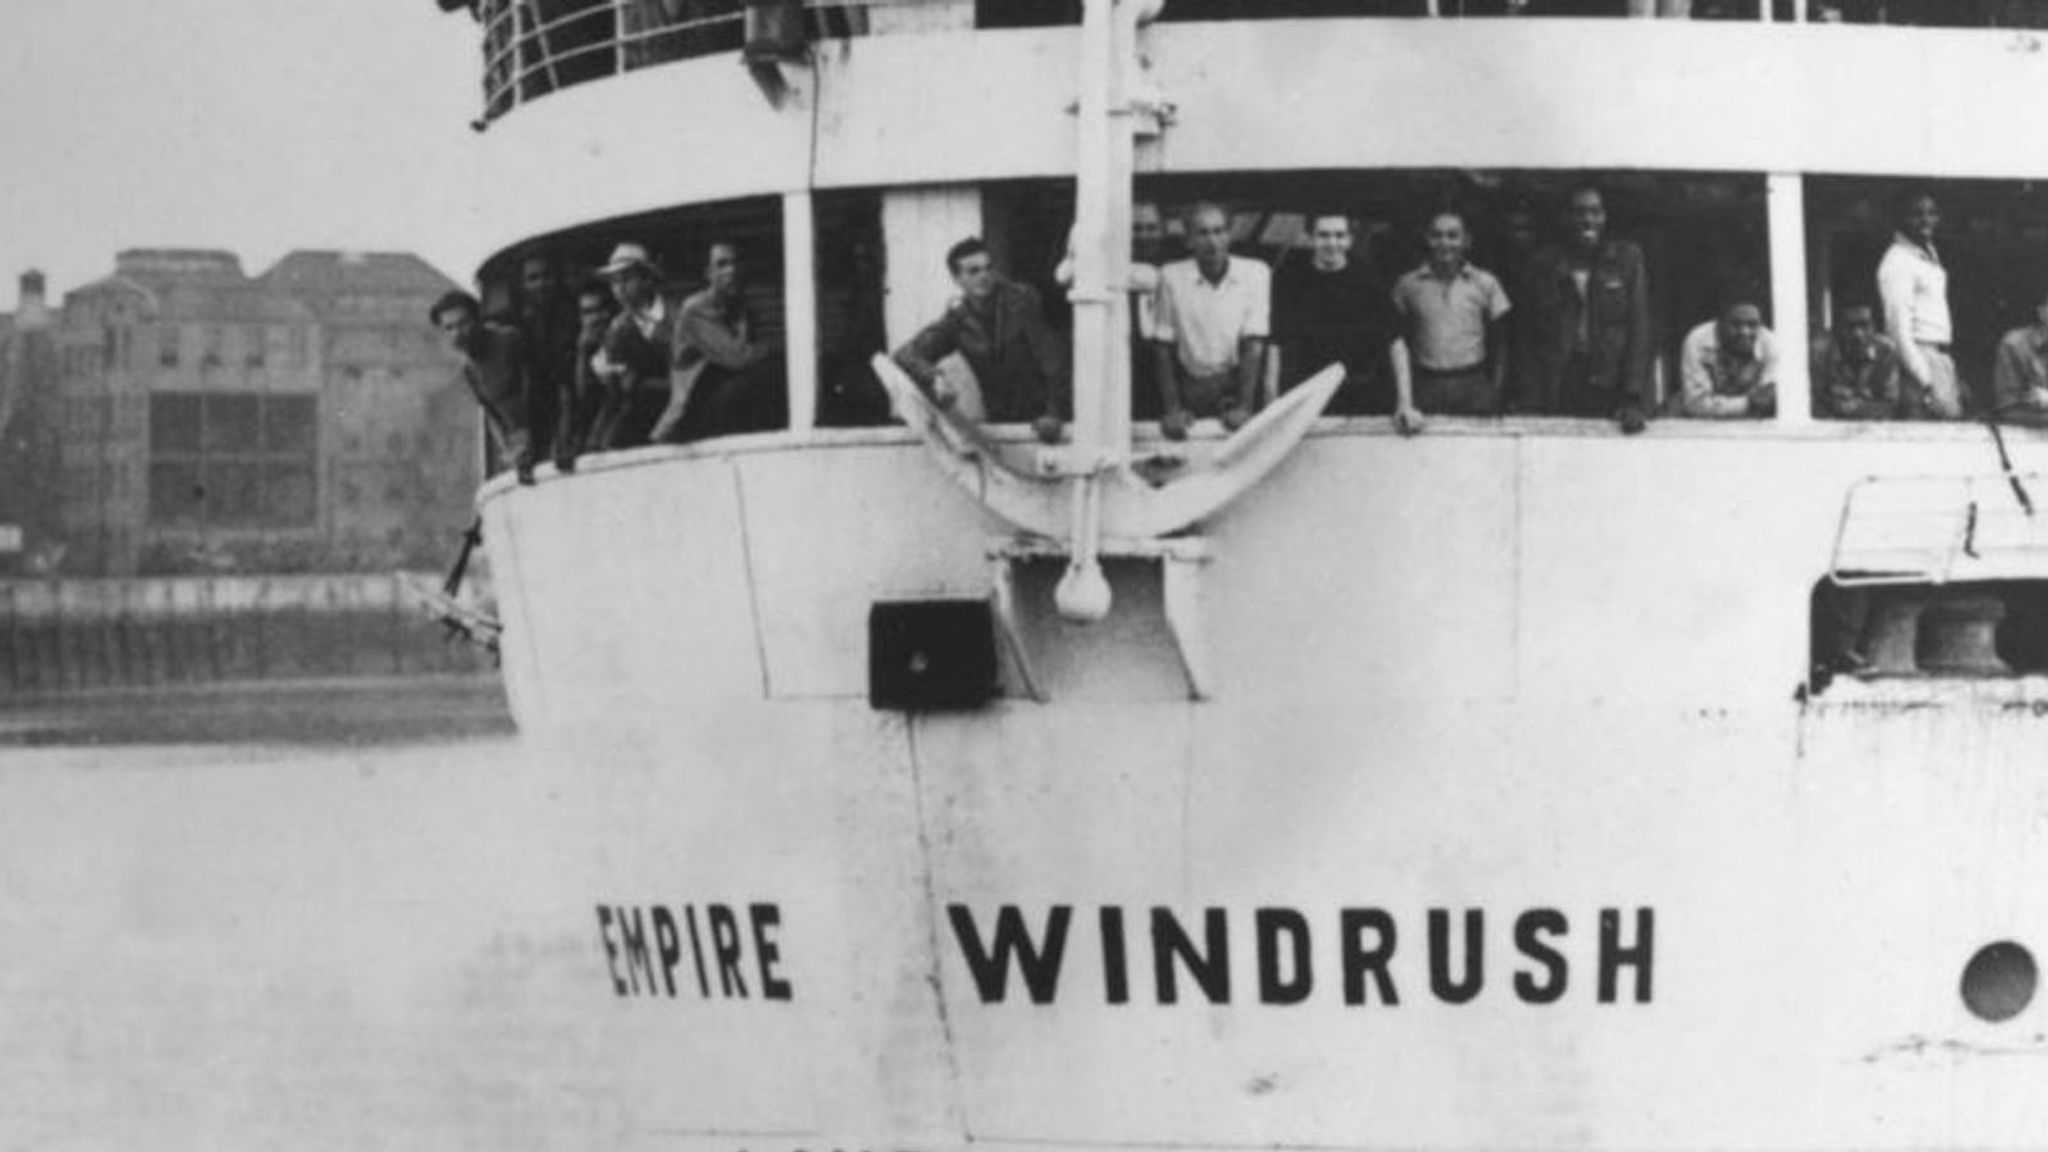 Windrush Steel Band Hire Music BLM